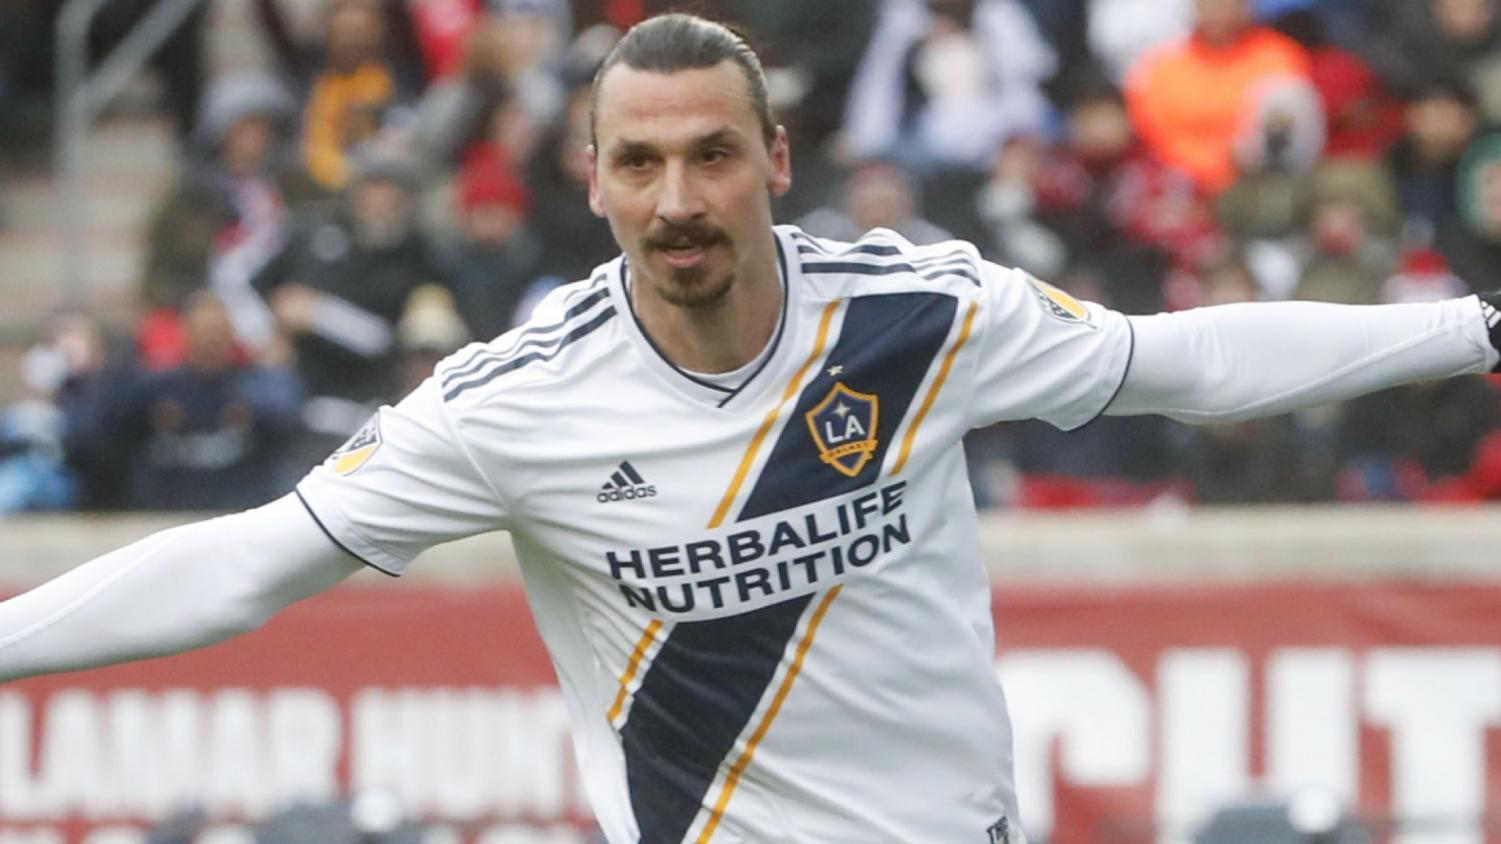 Newly acquired player Zlatan Ibrahimovic celebrates his goal during a LA Galaxy home match.  Ibrahimovic was recently acquired from powerhouse English club Manchester United.